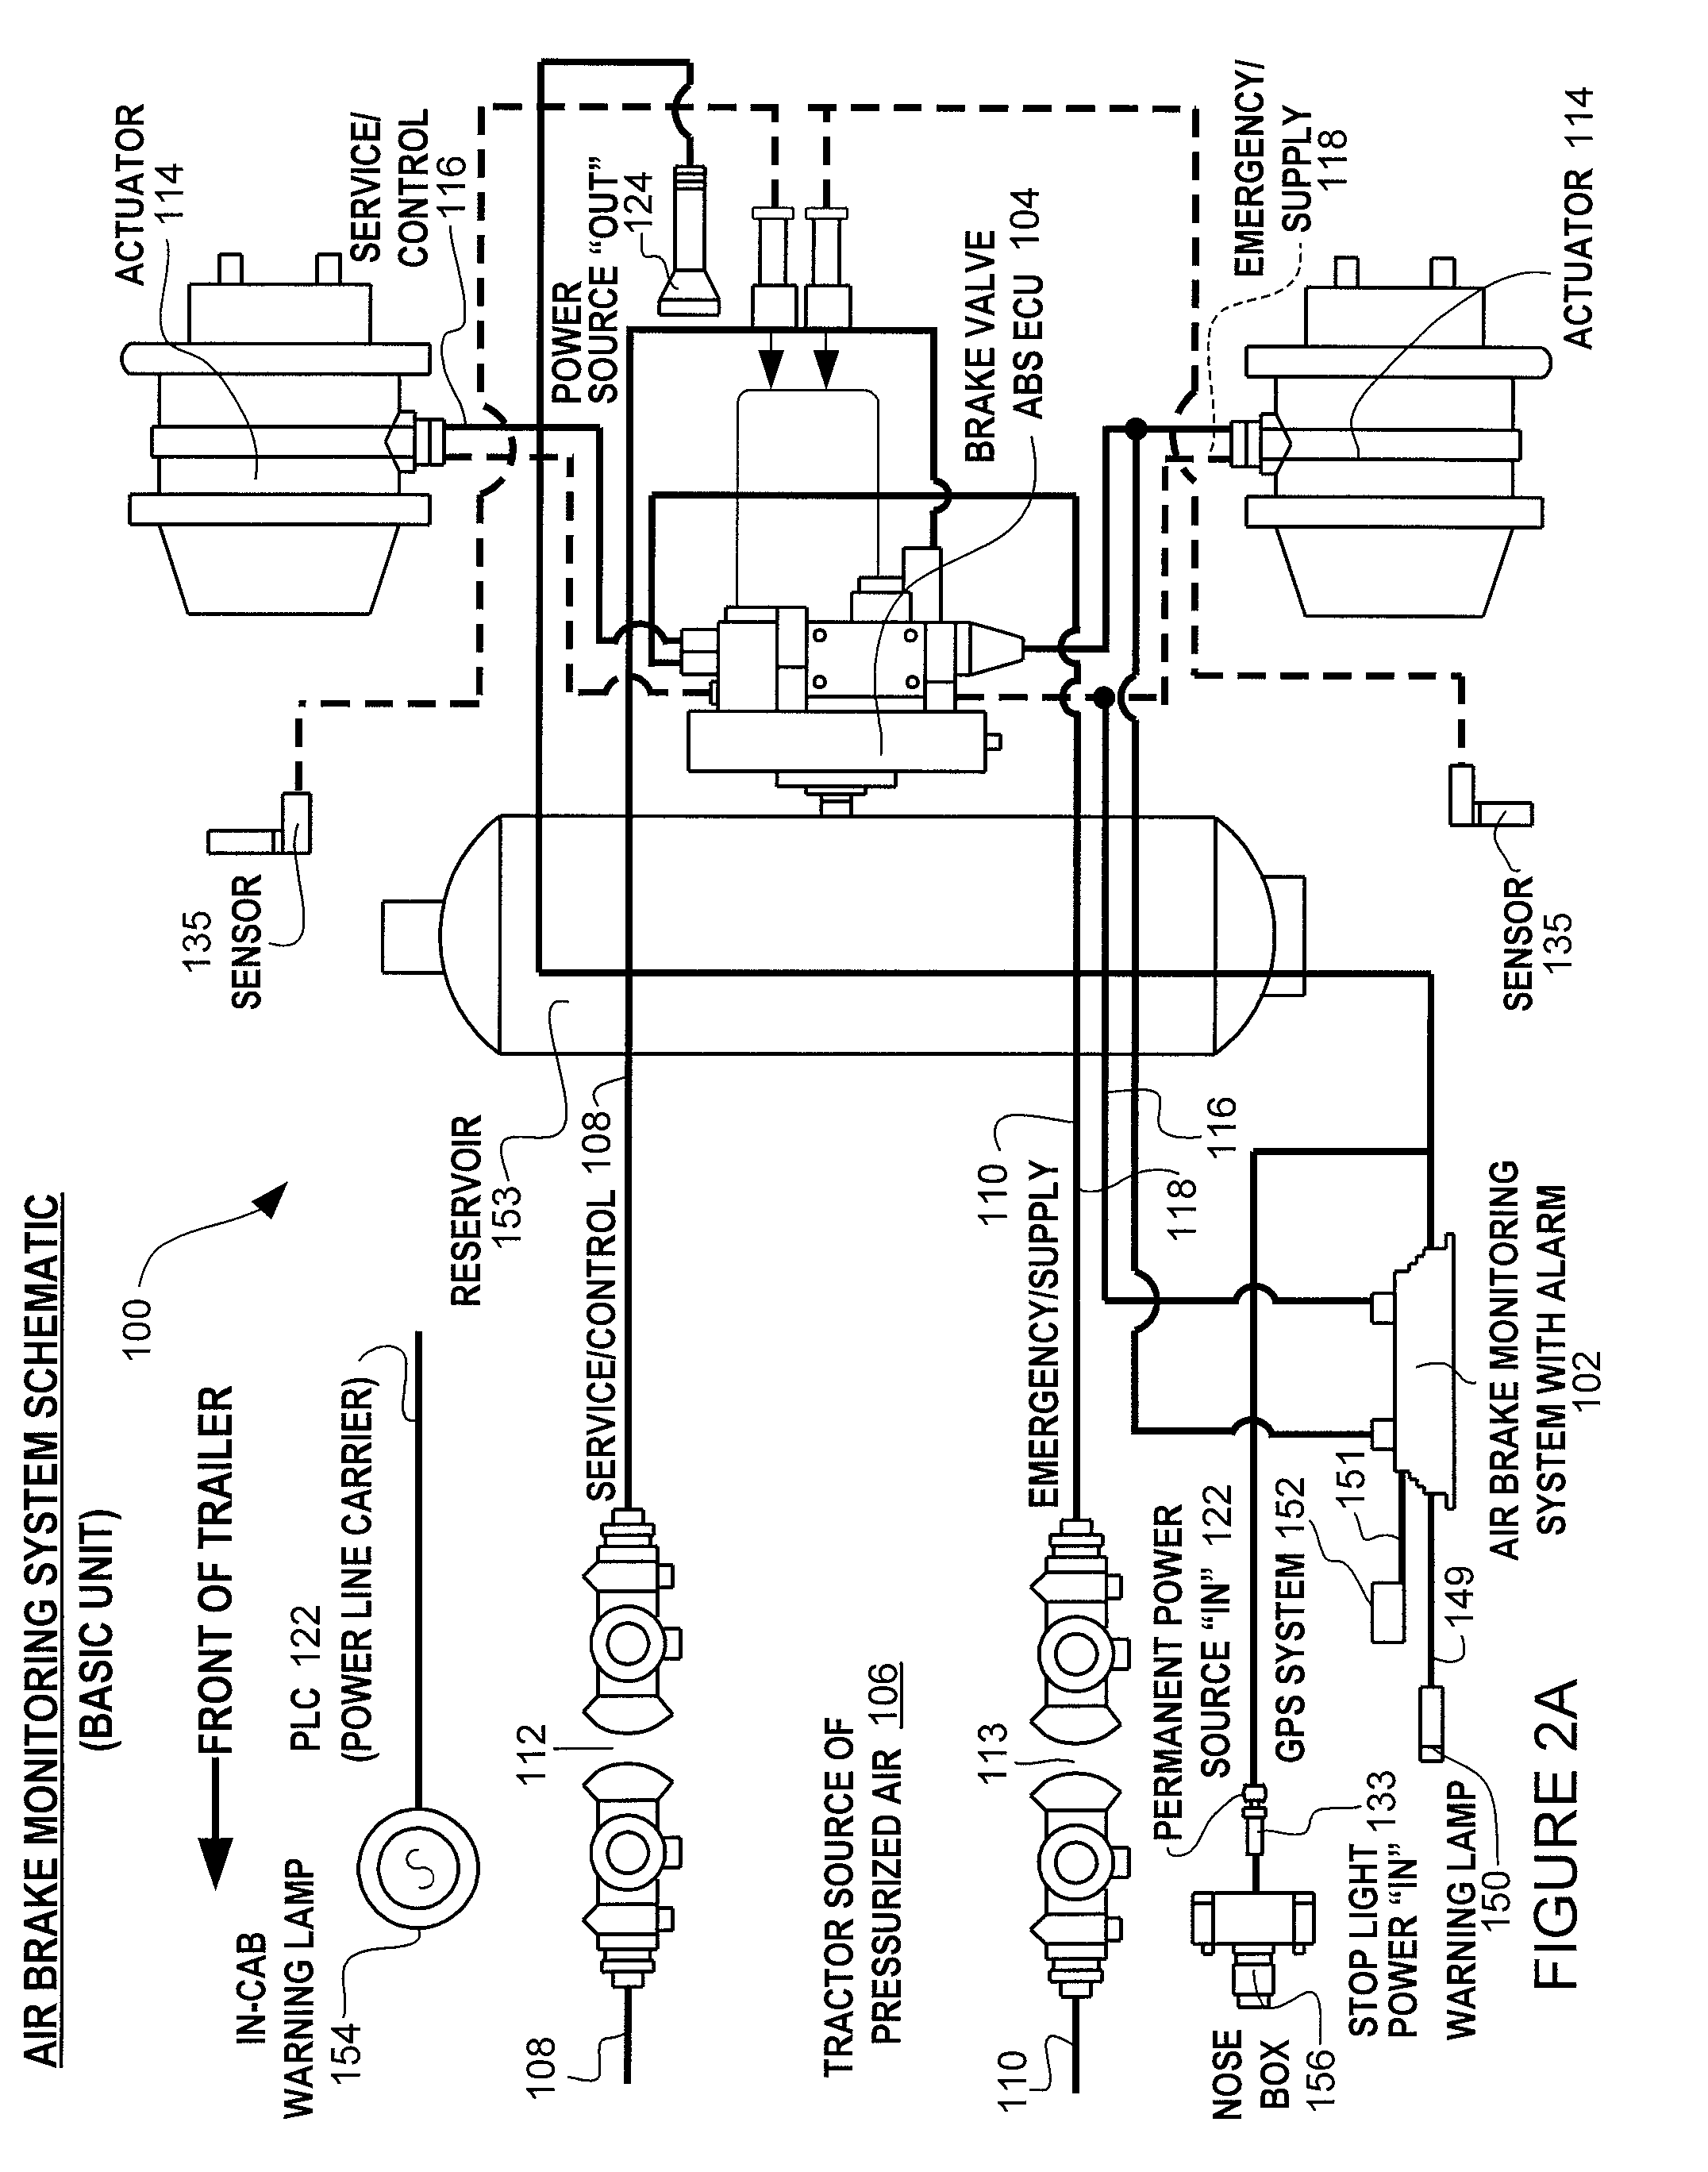 1985 Buick Riviera Wiring Diagram Worksheet And Lesabre Fuse Box Regal 31 Images Rh Highcare Asia 1953 Special 95